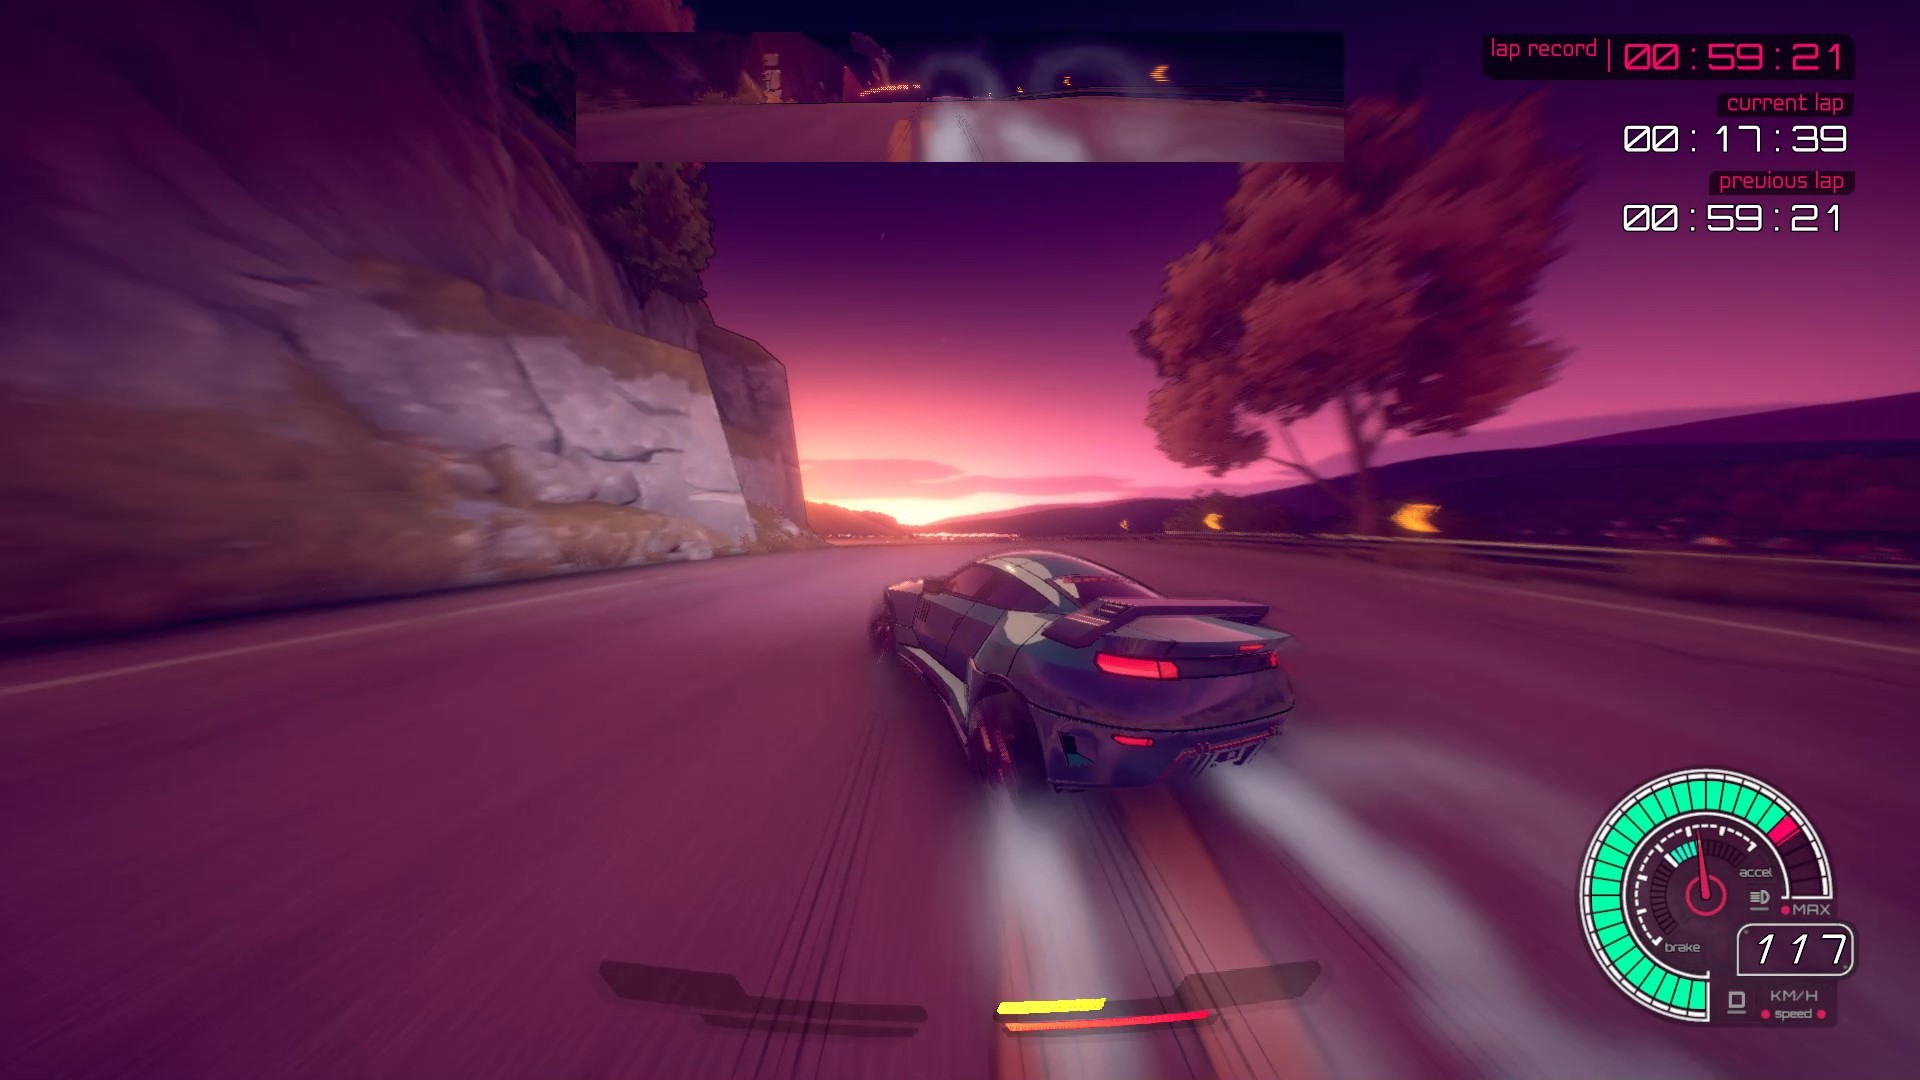 Inertial Drift: Sunset Prologue